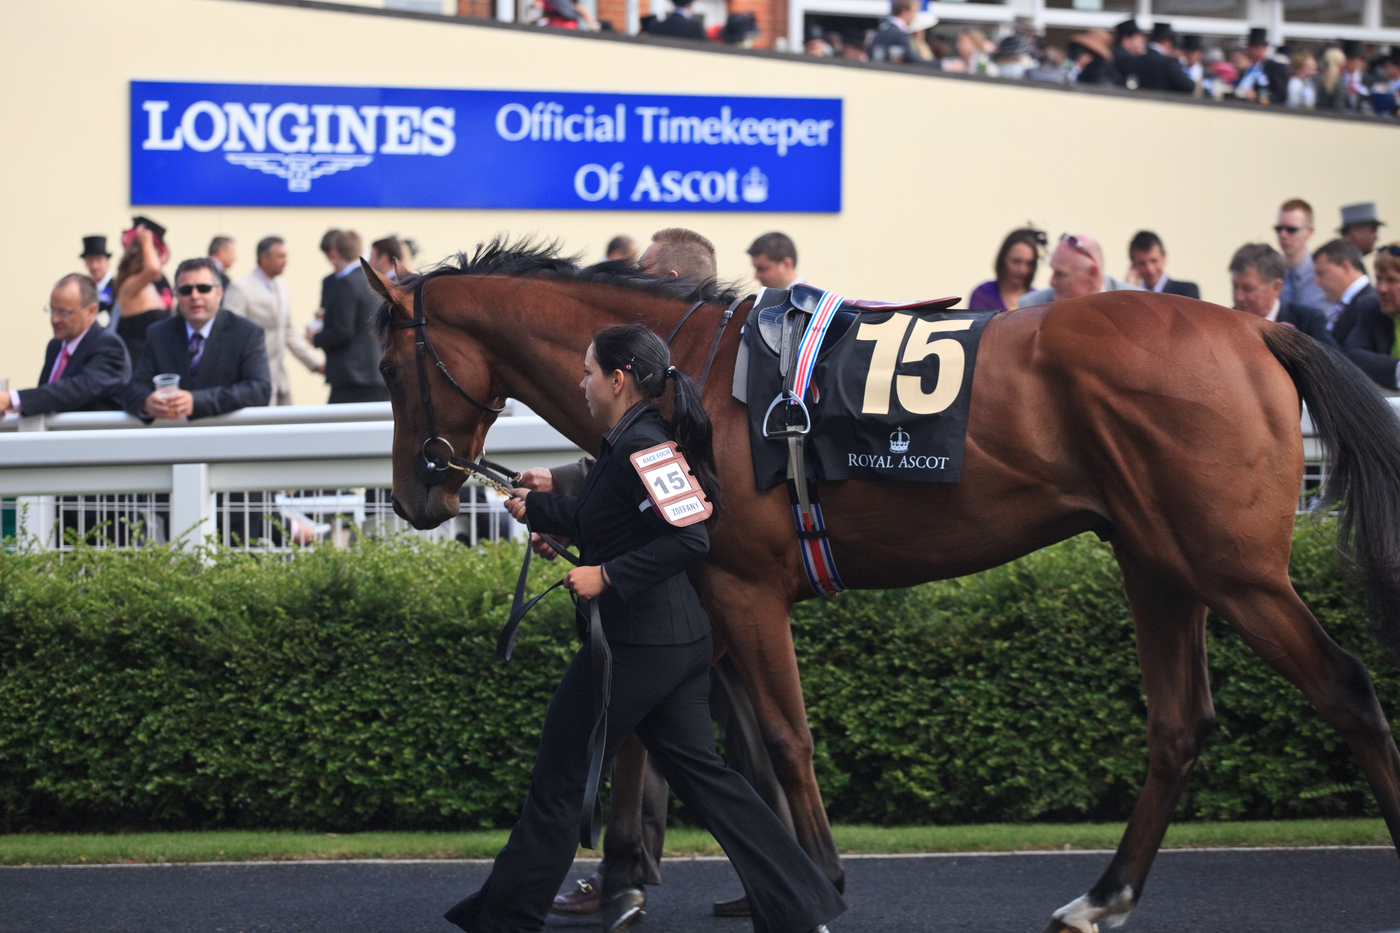 Longines Flat Racing Event: The Asian star Chi Ling Lin discovers the prestigious glamour of Royal Ascot 6